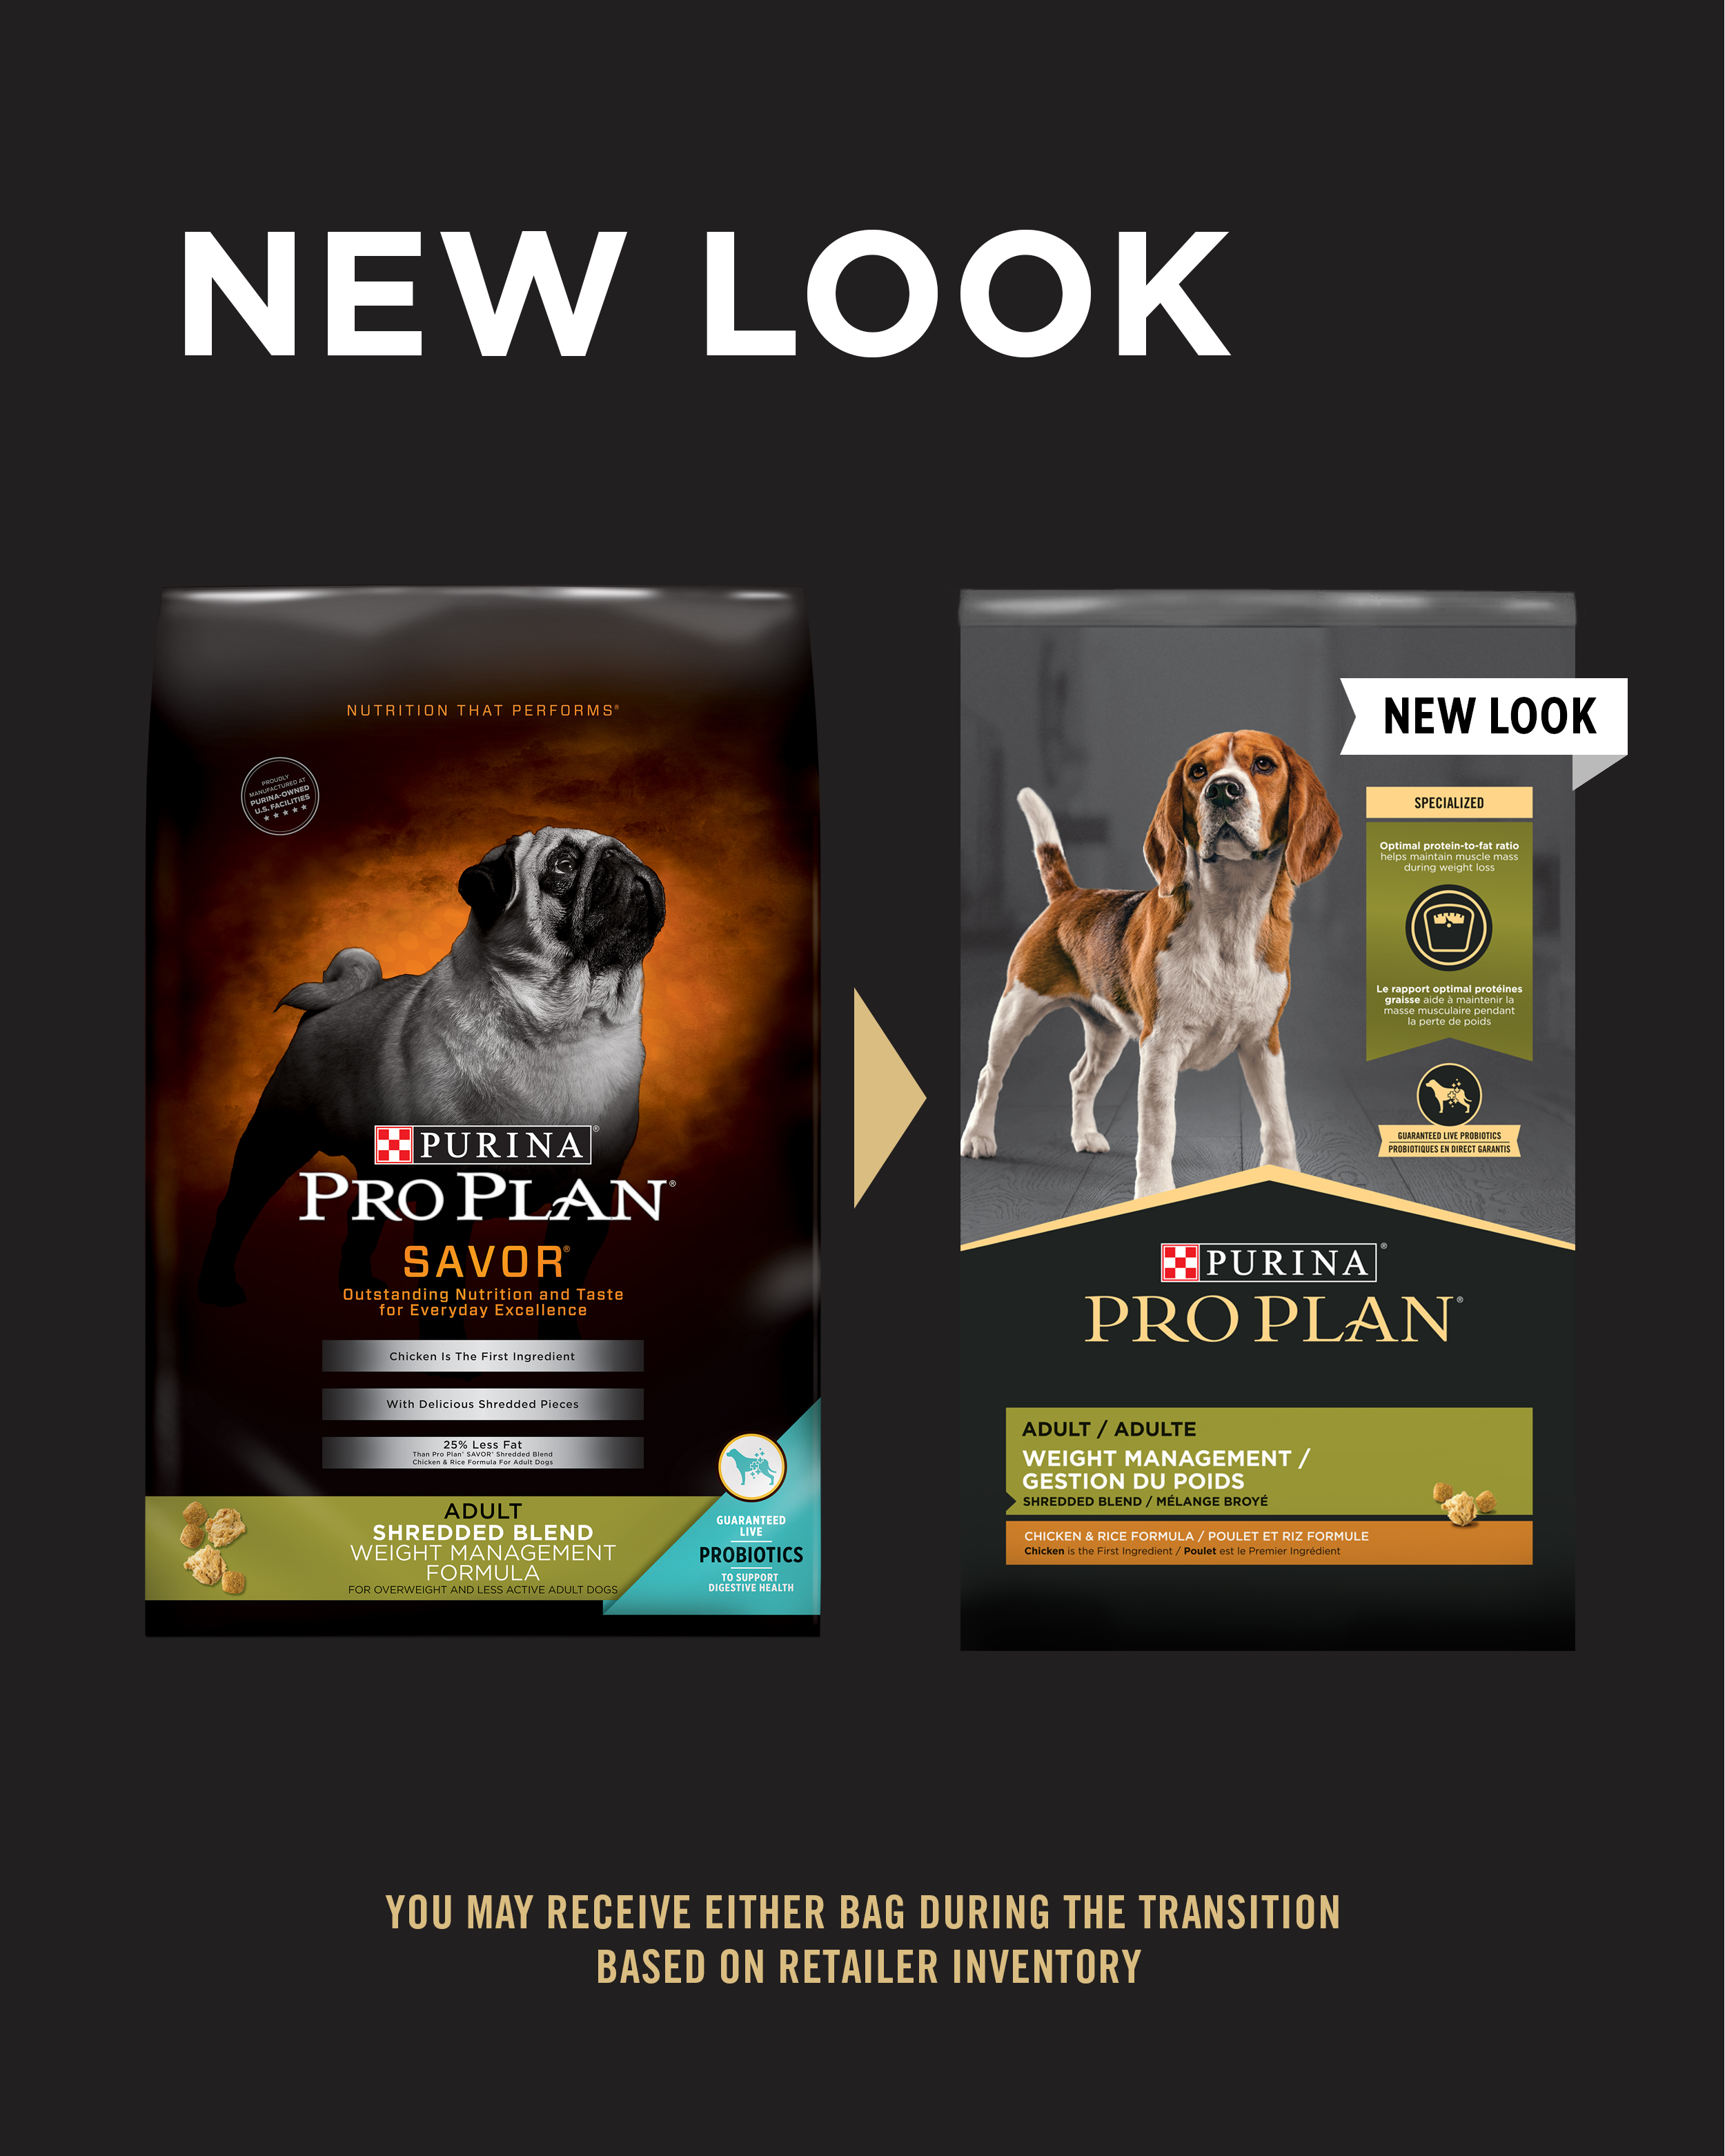 Purina Pro Plan Specialized Weight Management Shredded Blend Chicken & Rice Formula